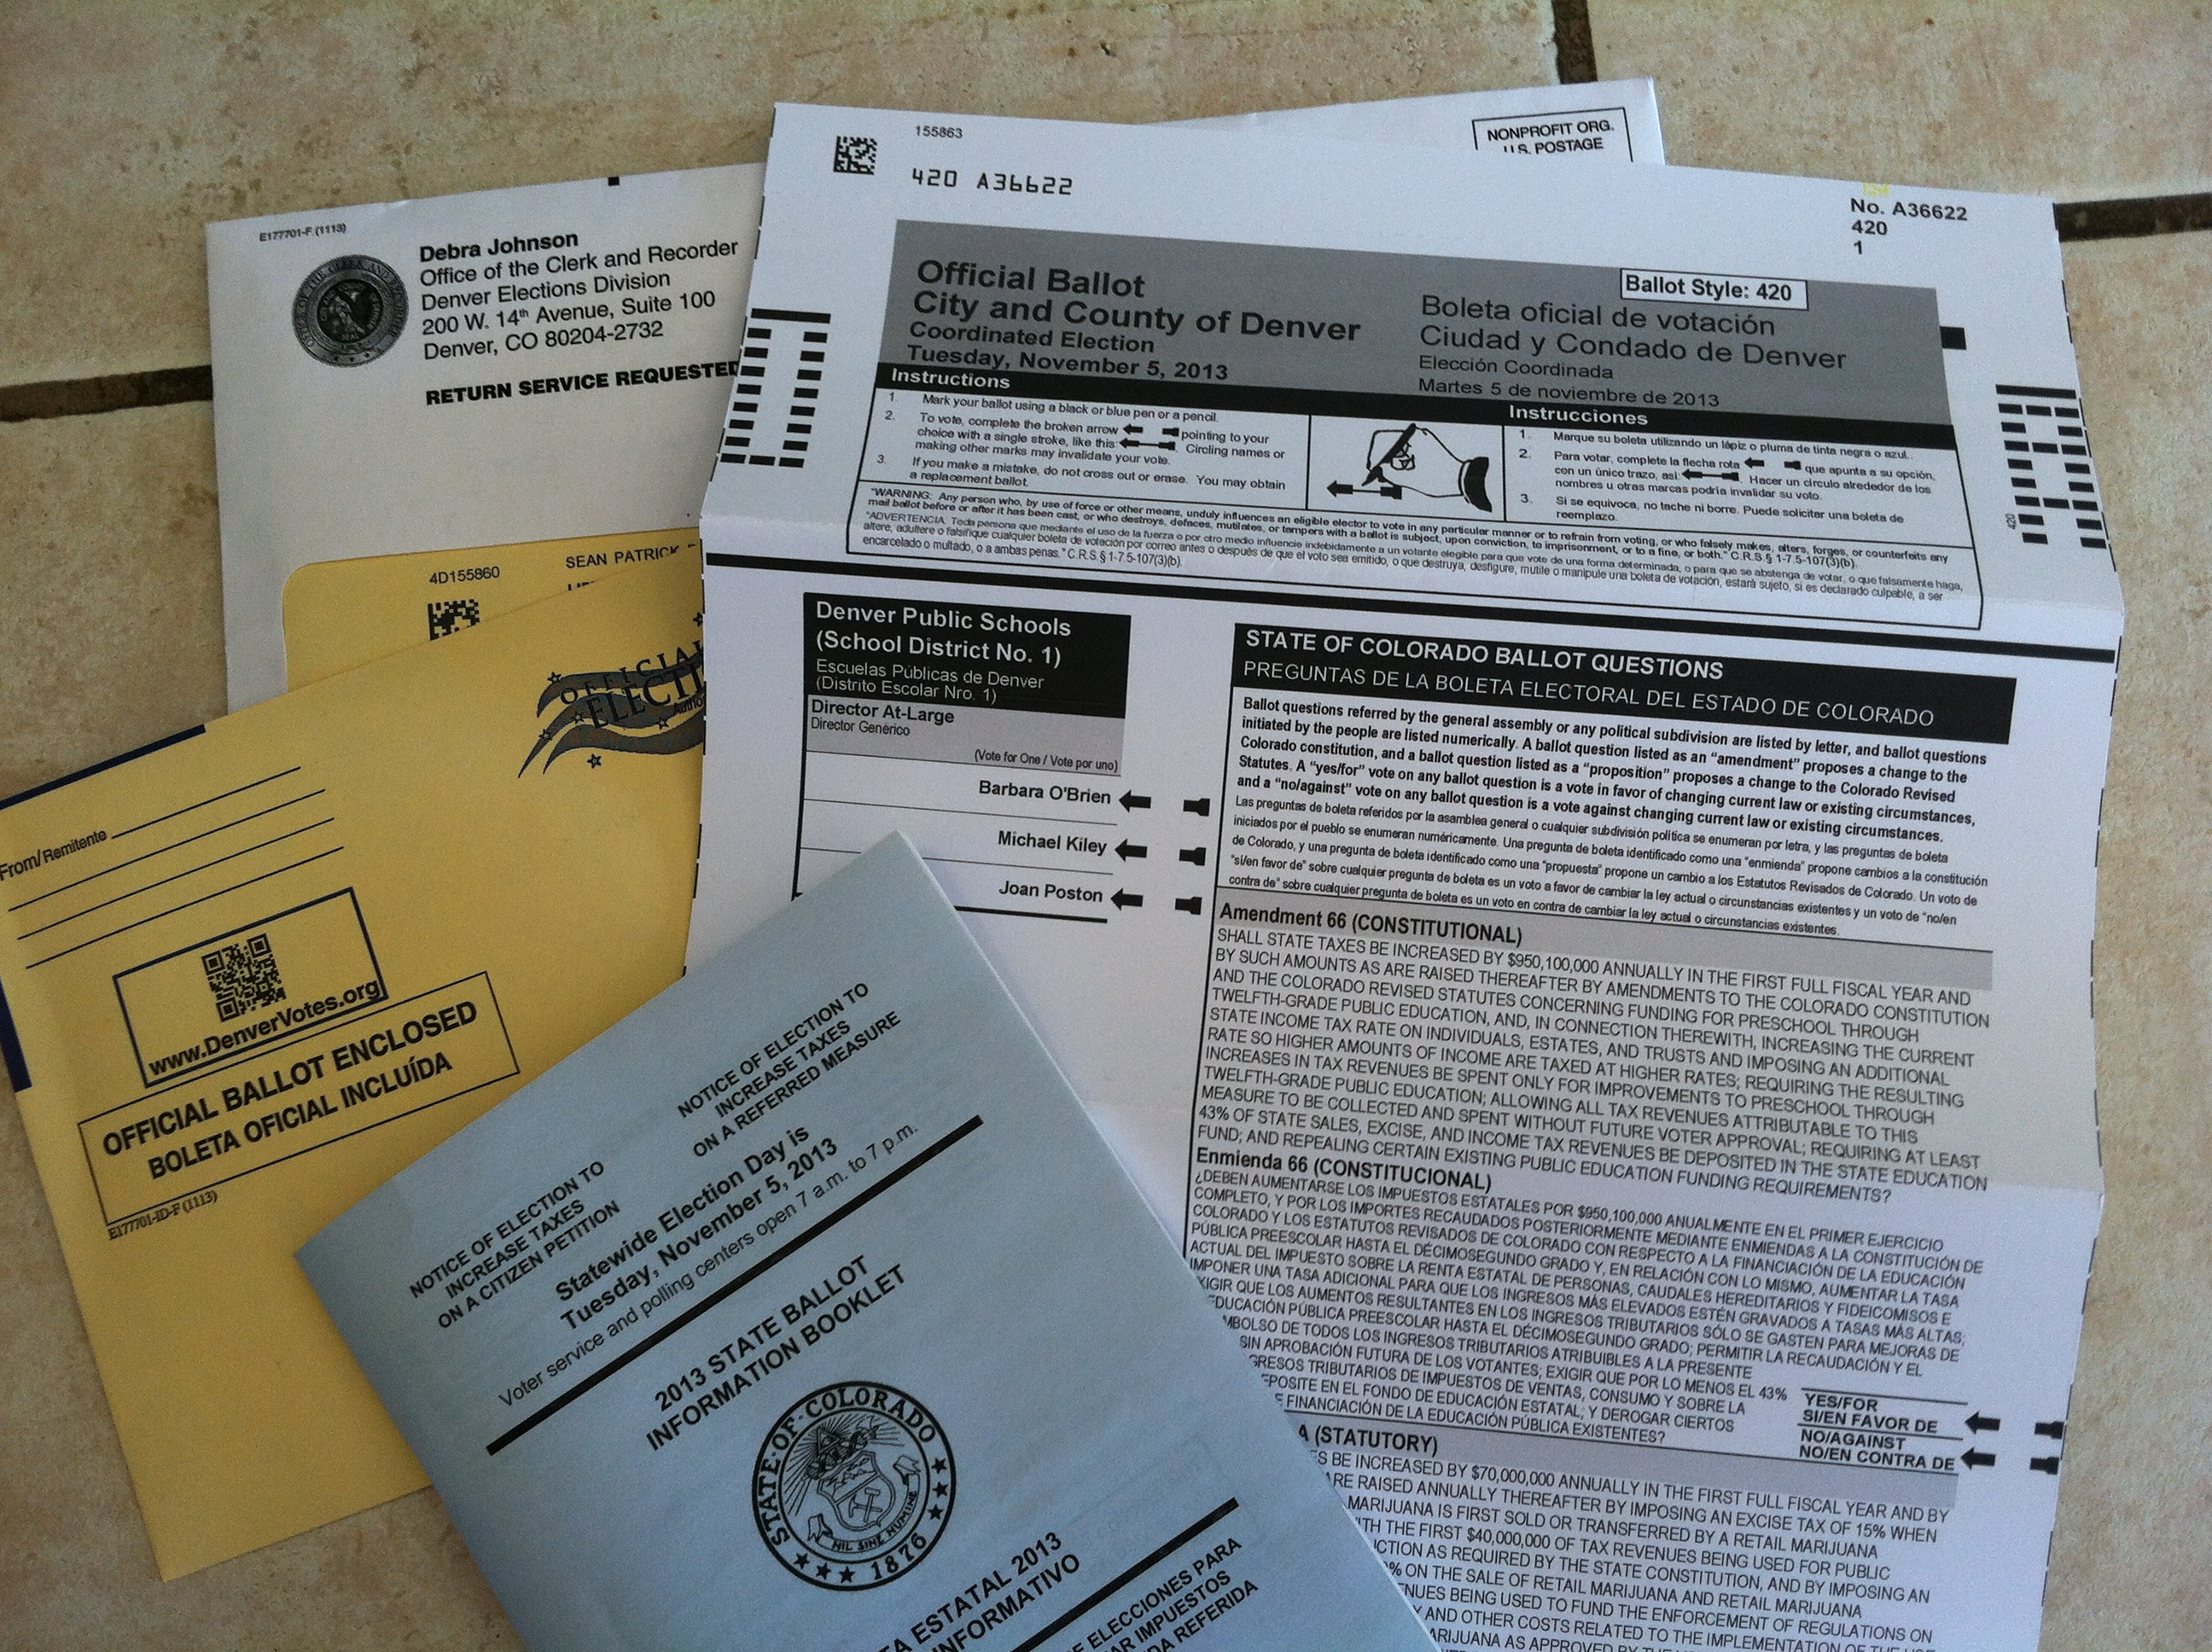 A 2013 ballot and voter blue book.